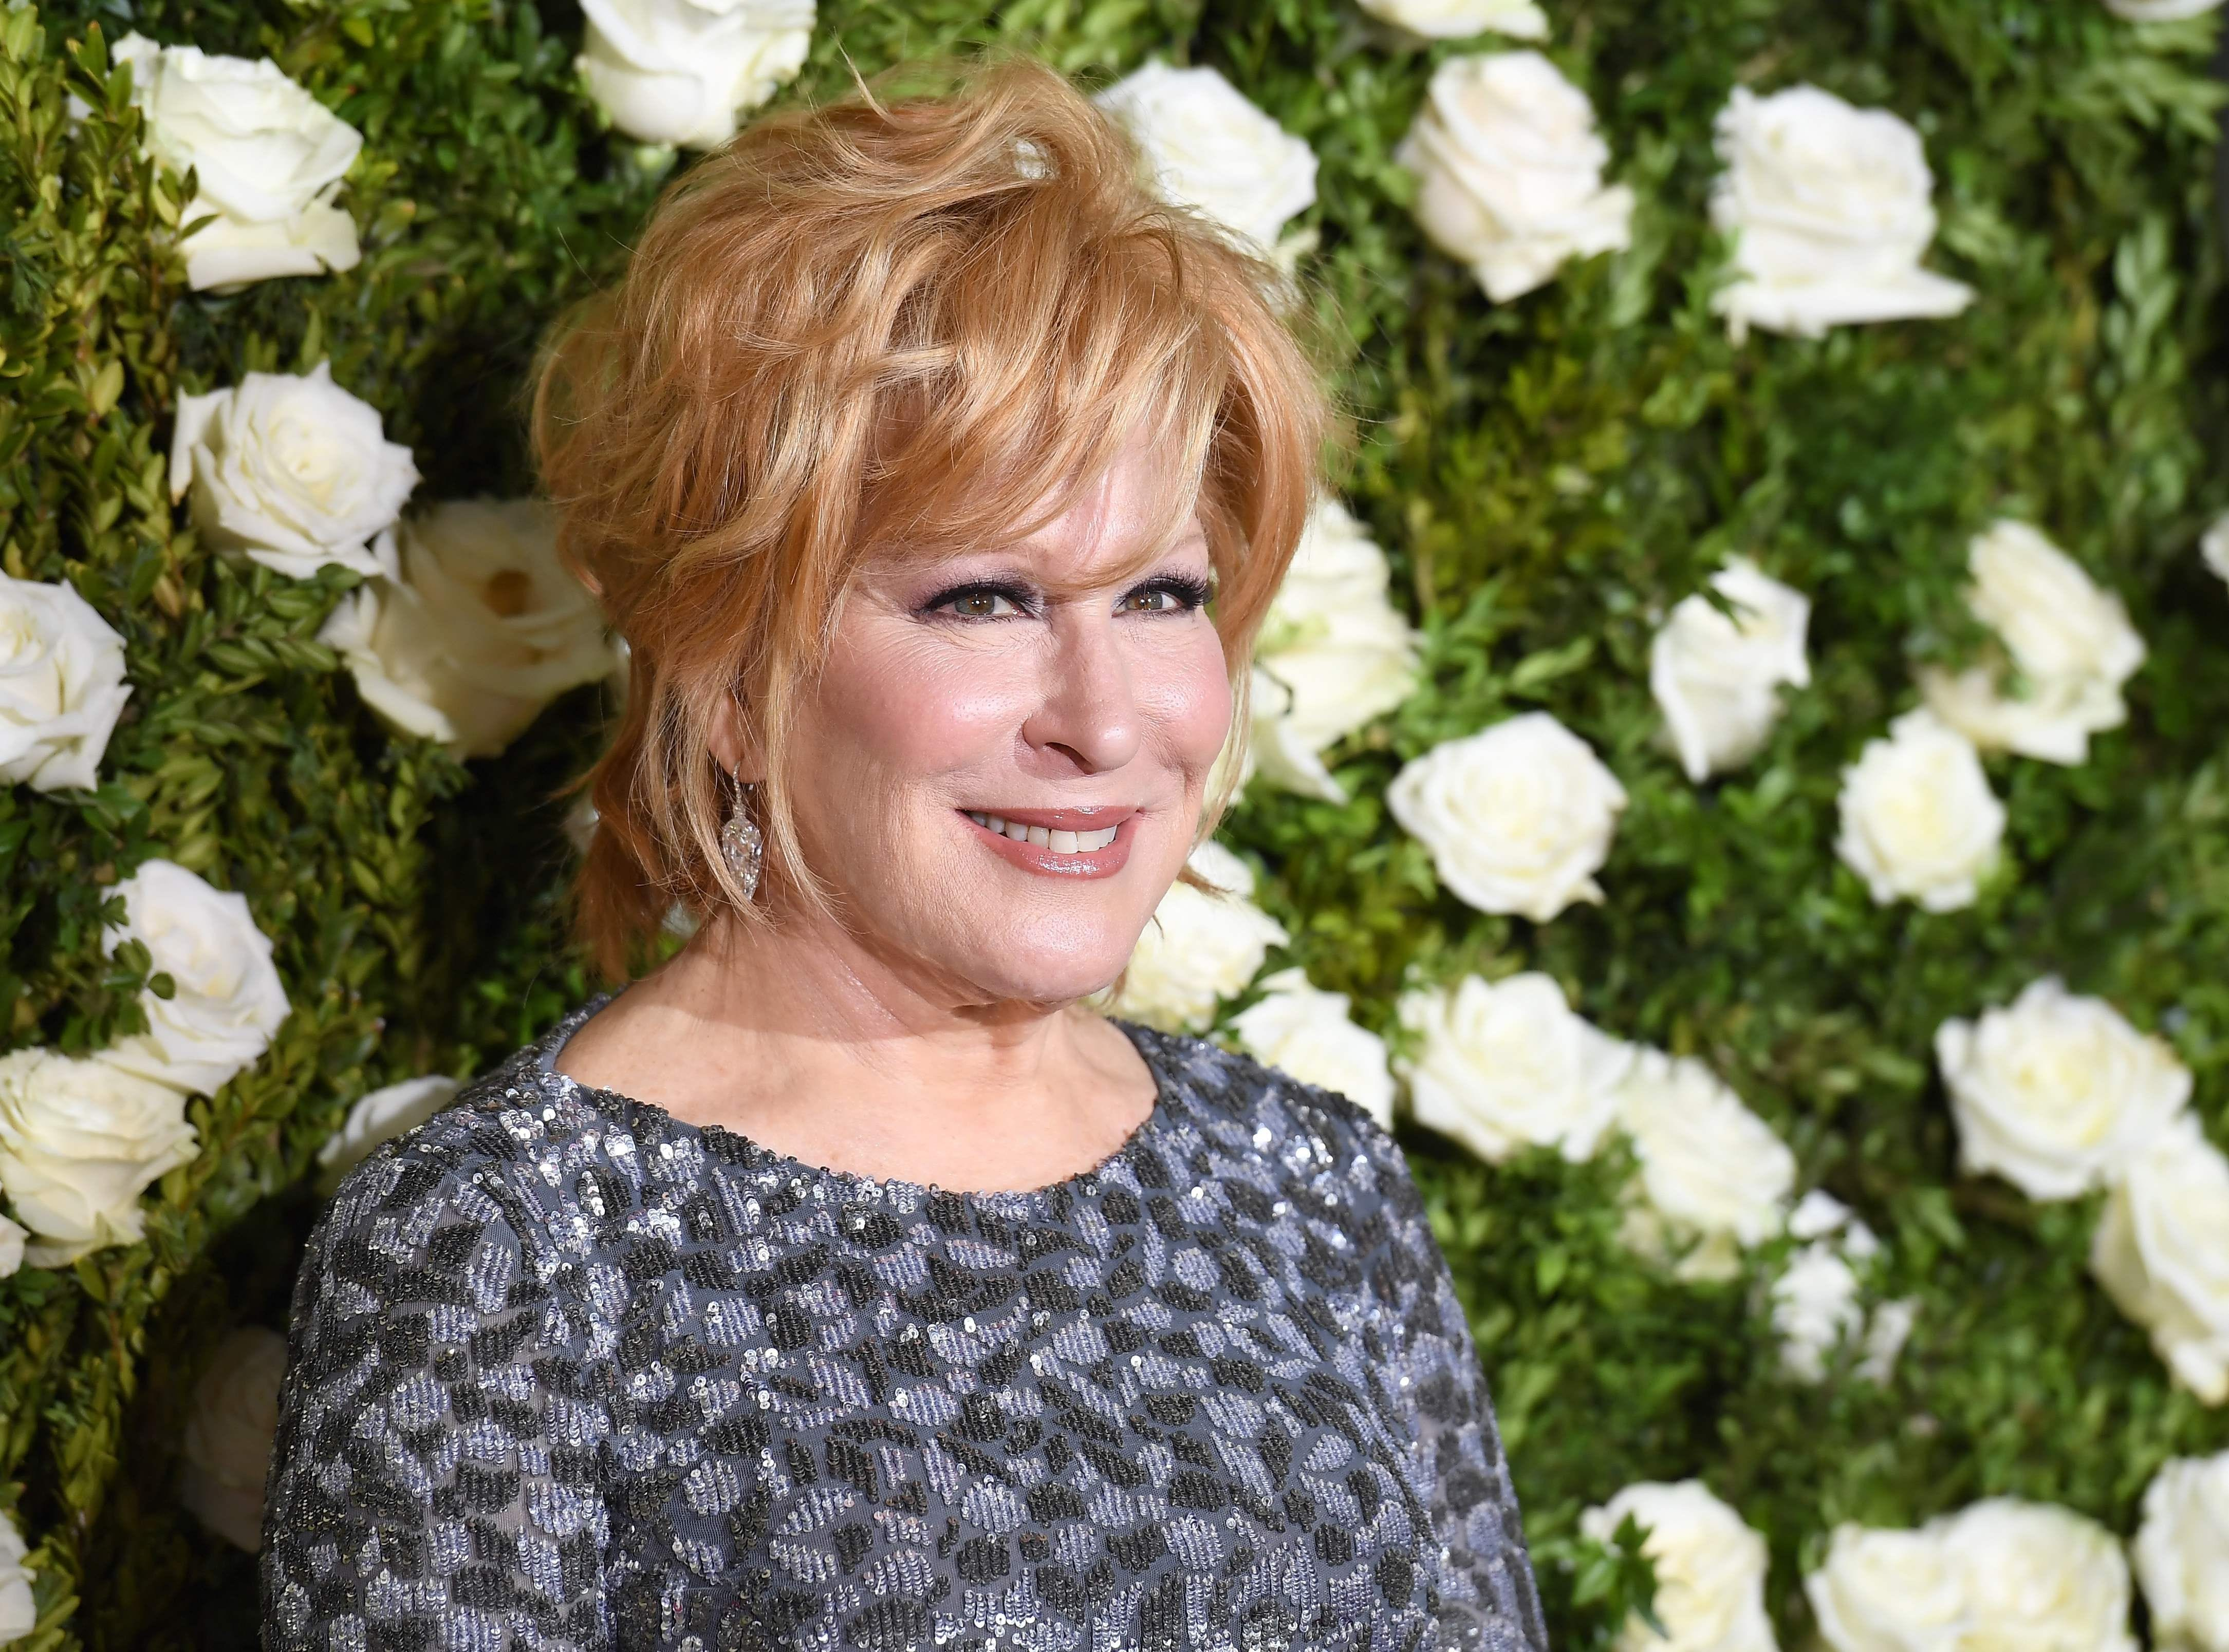 Bette Midler tweets #MeToo story of assault by Geraldo Rivera from Barbara Walters interview